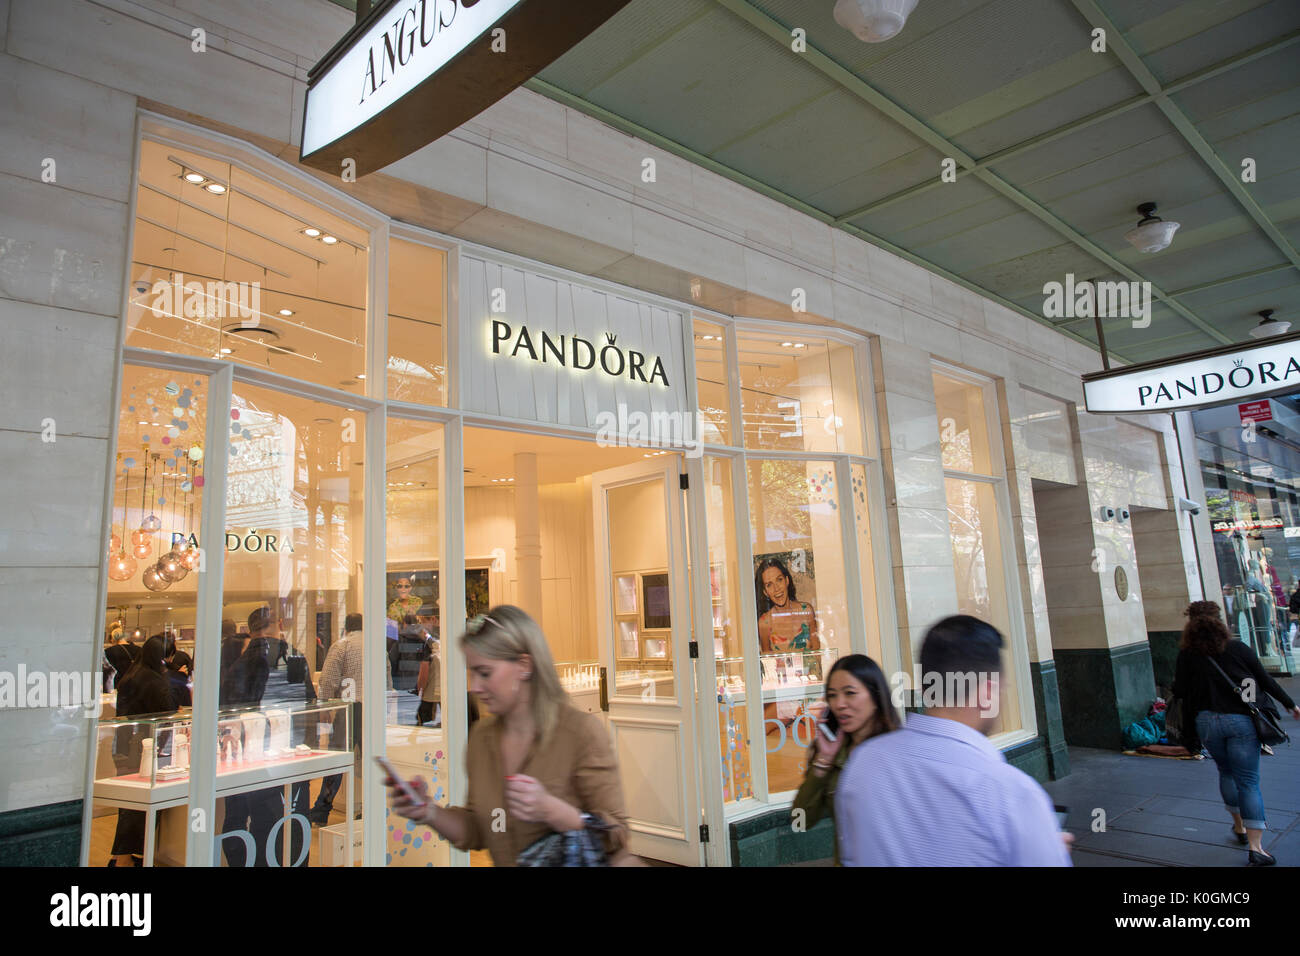 Jewellry Stores High Resolution Stock Photography and Images - Alamy